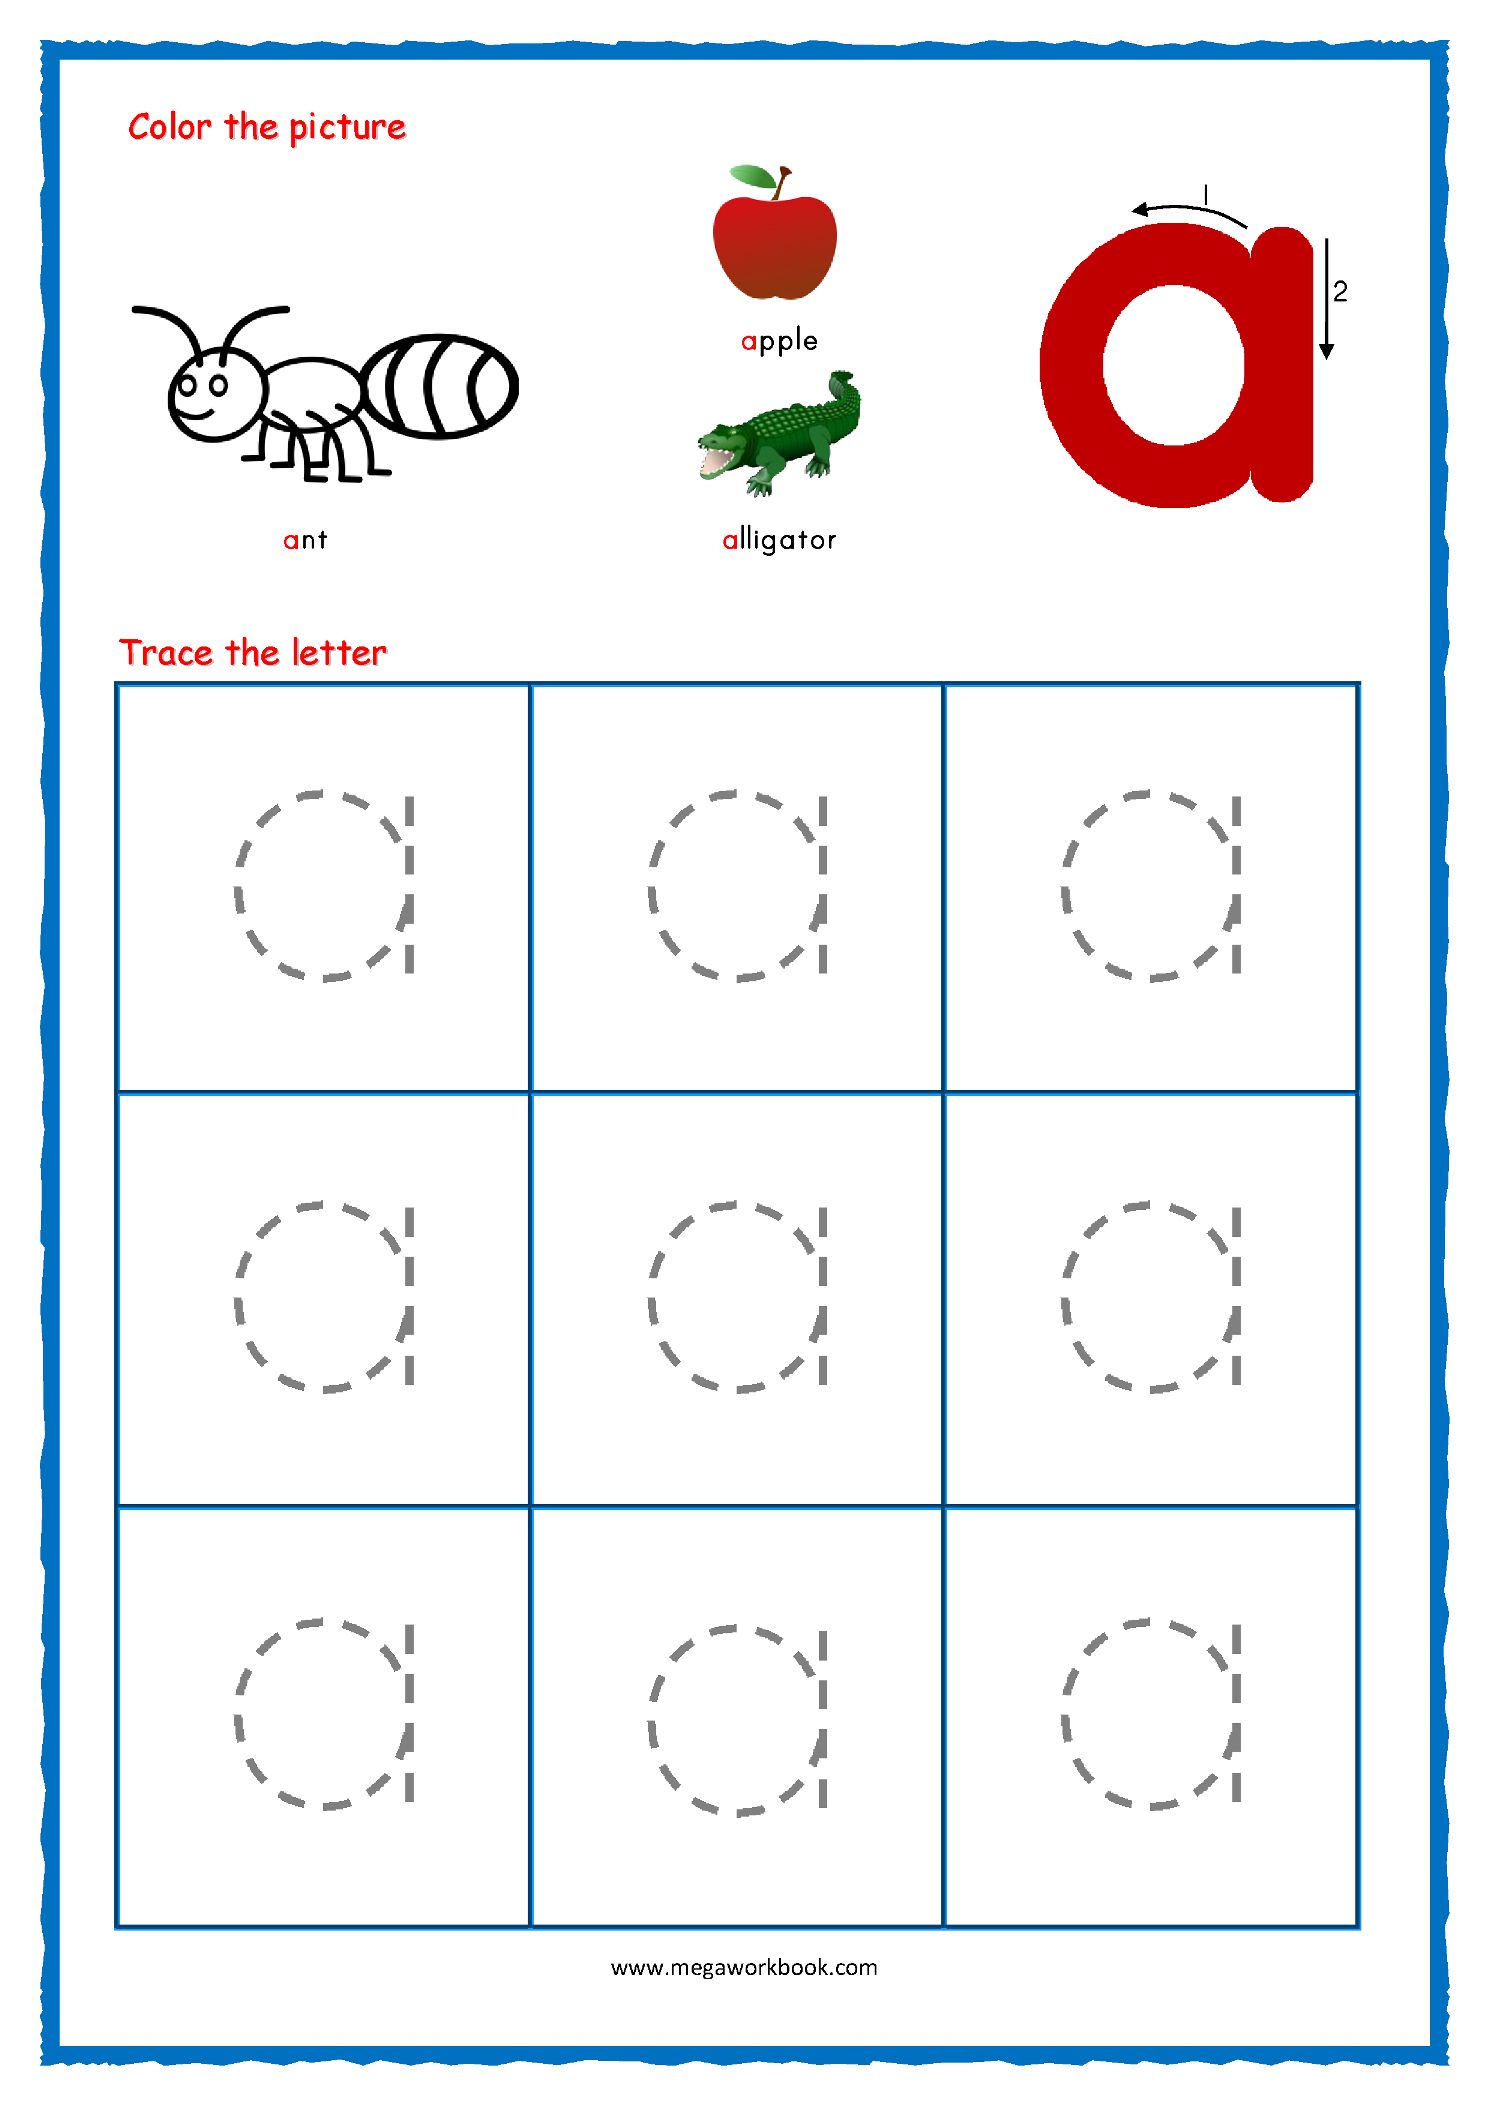 Traceable Lower Case Letters for Tracing Lowercase Letters Az